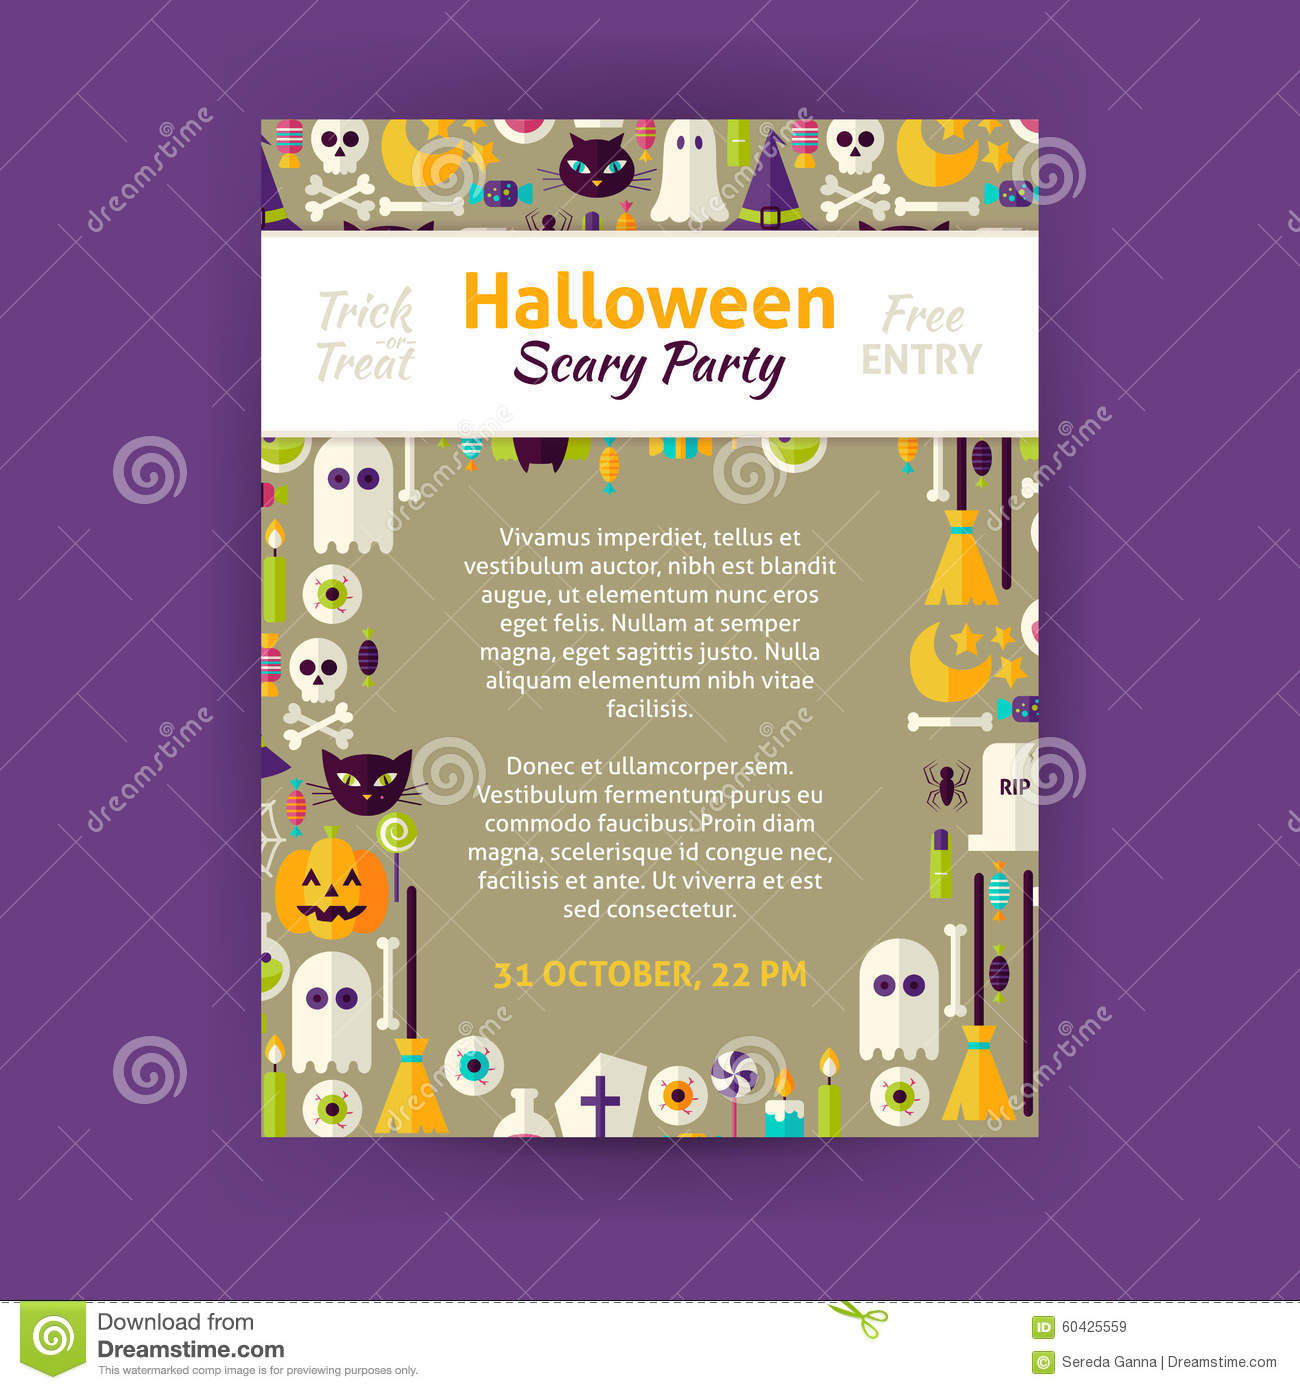 Trick or treat halloween party invitation vector template flyer trick or treat halloween party invitation vector template flyer stopboris Images